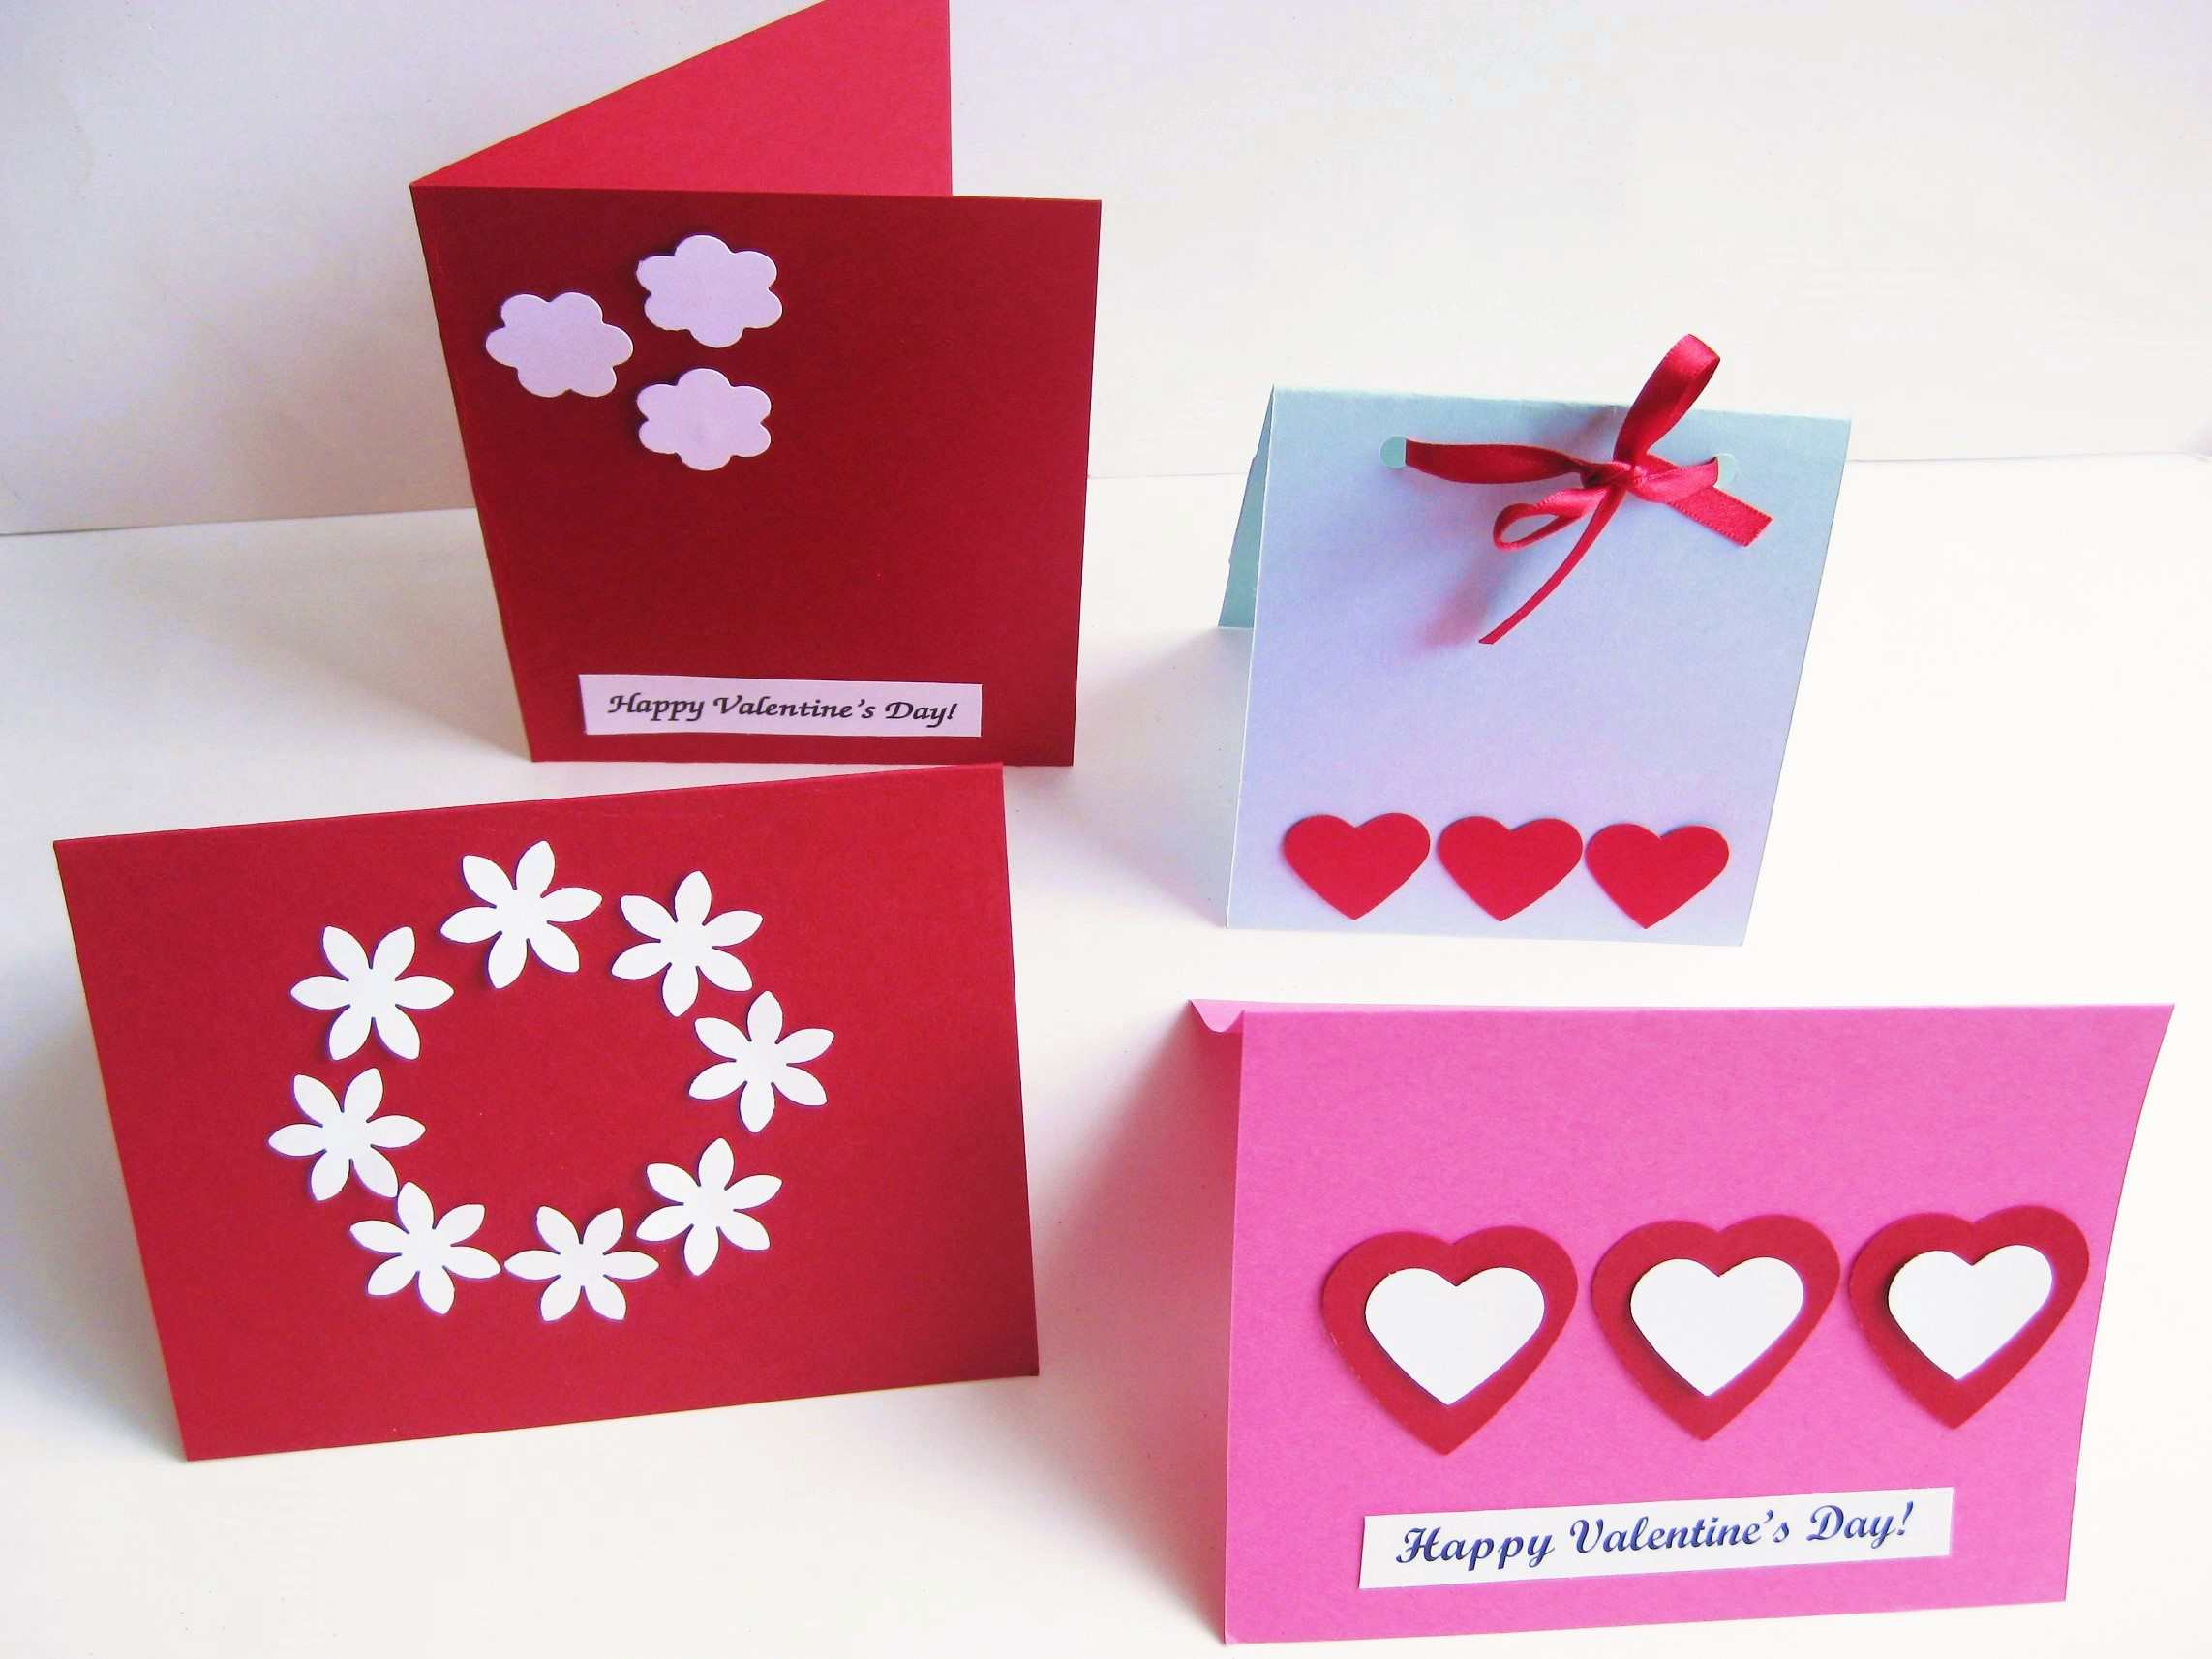 Homemade Valentine's Day paper cards